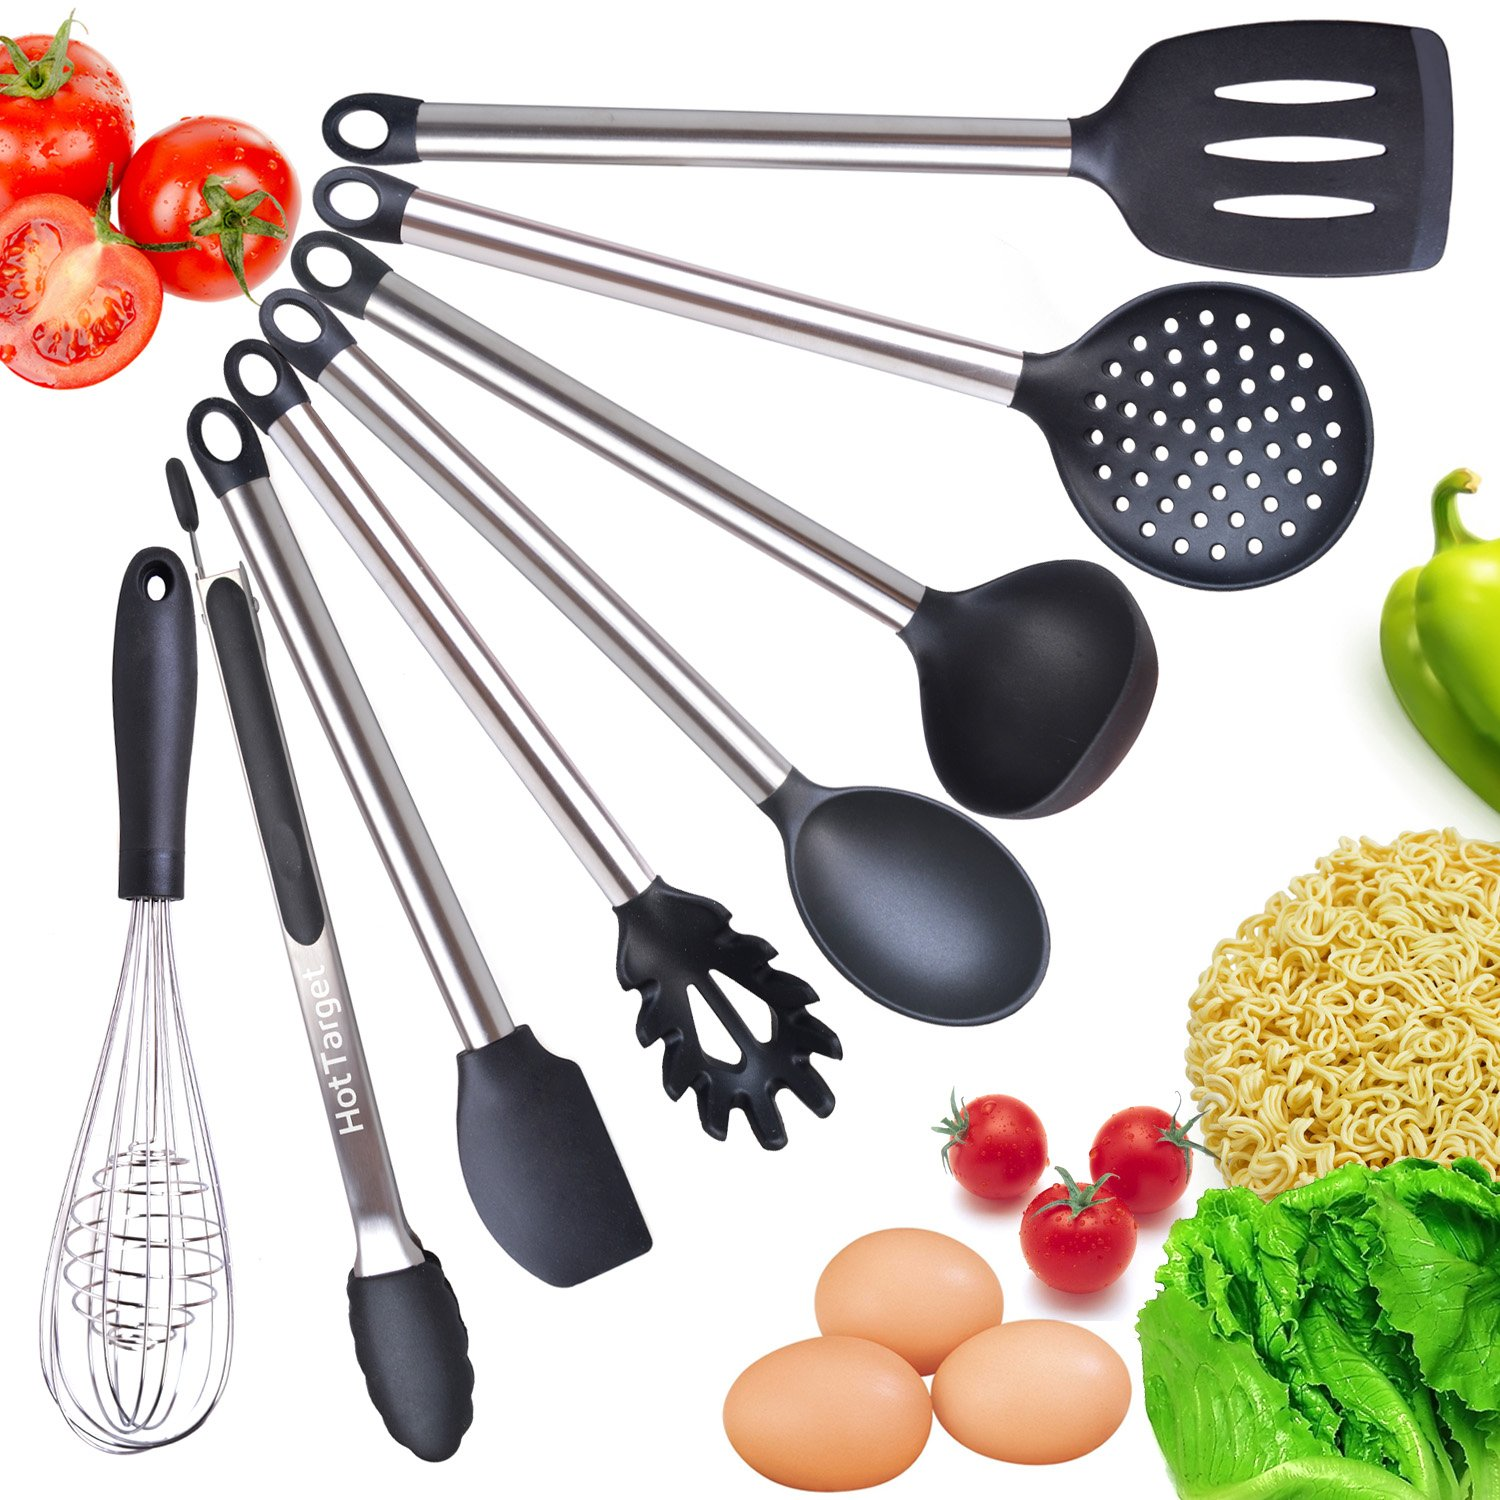 Amazon.com: Cooking Utensil Set- 8 Best Kitchen Utensils- Silicone ...